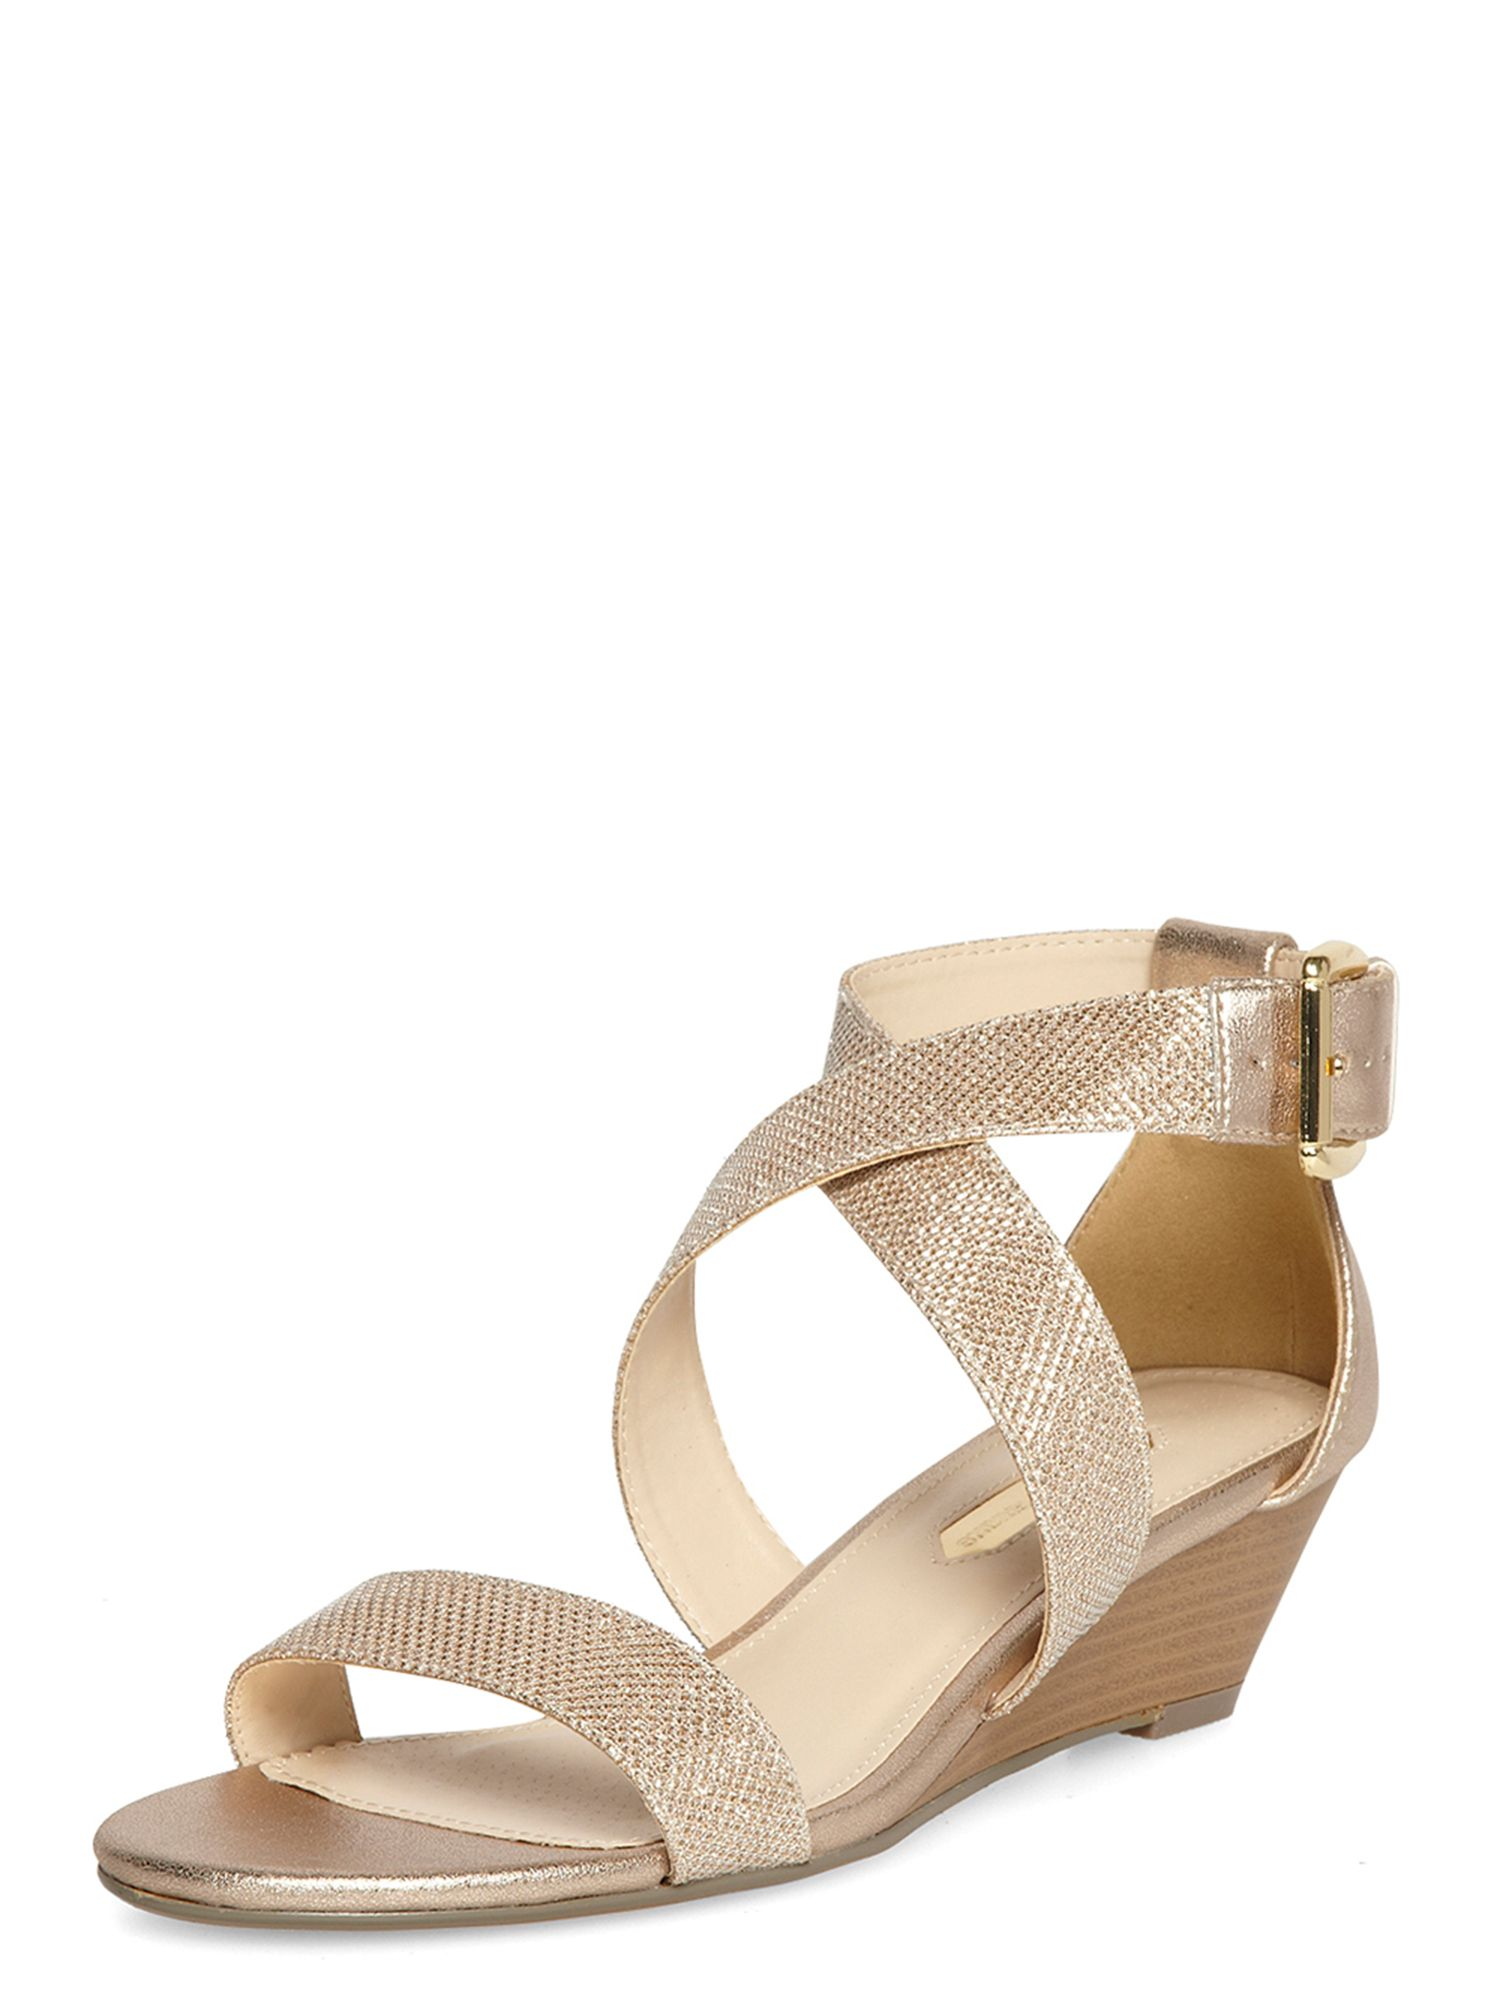 Shimmer low wedge shoe